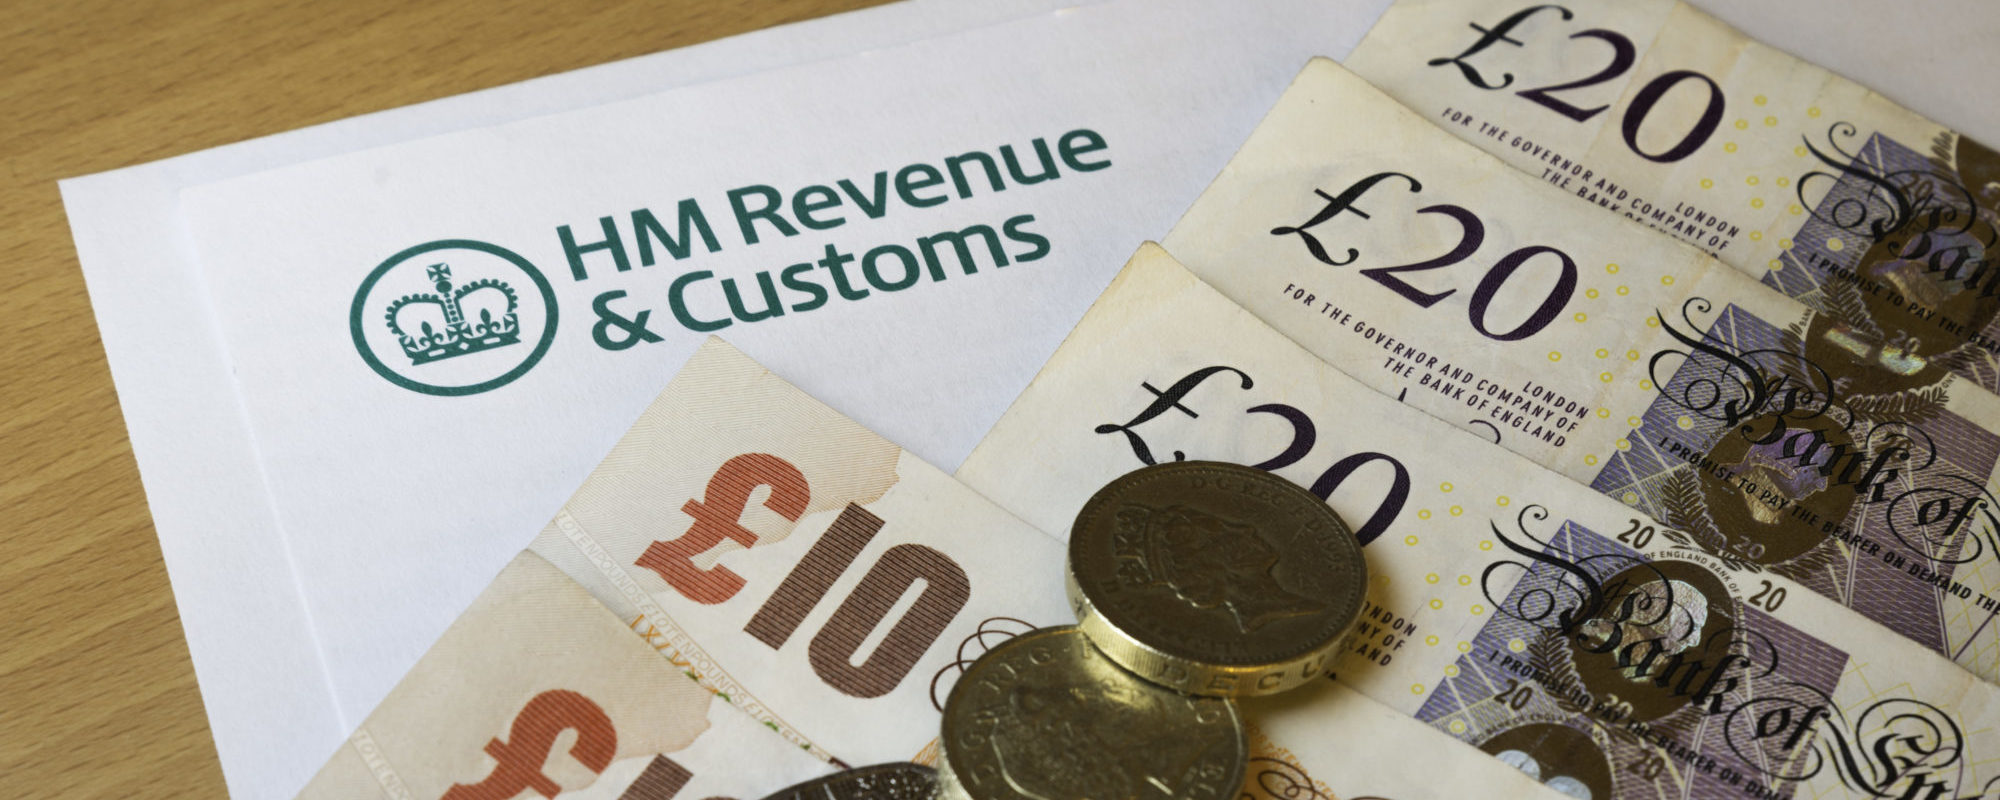 HMRC form with money